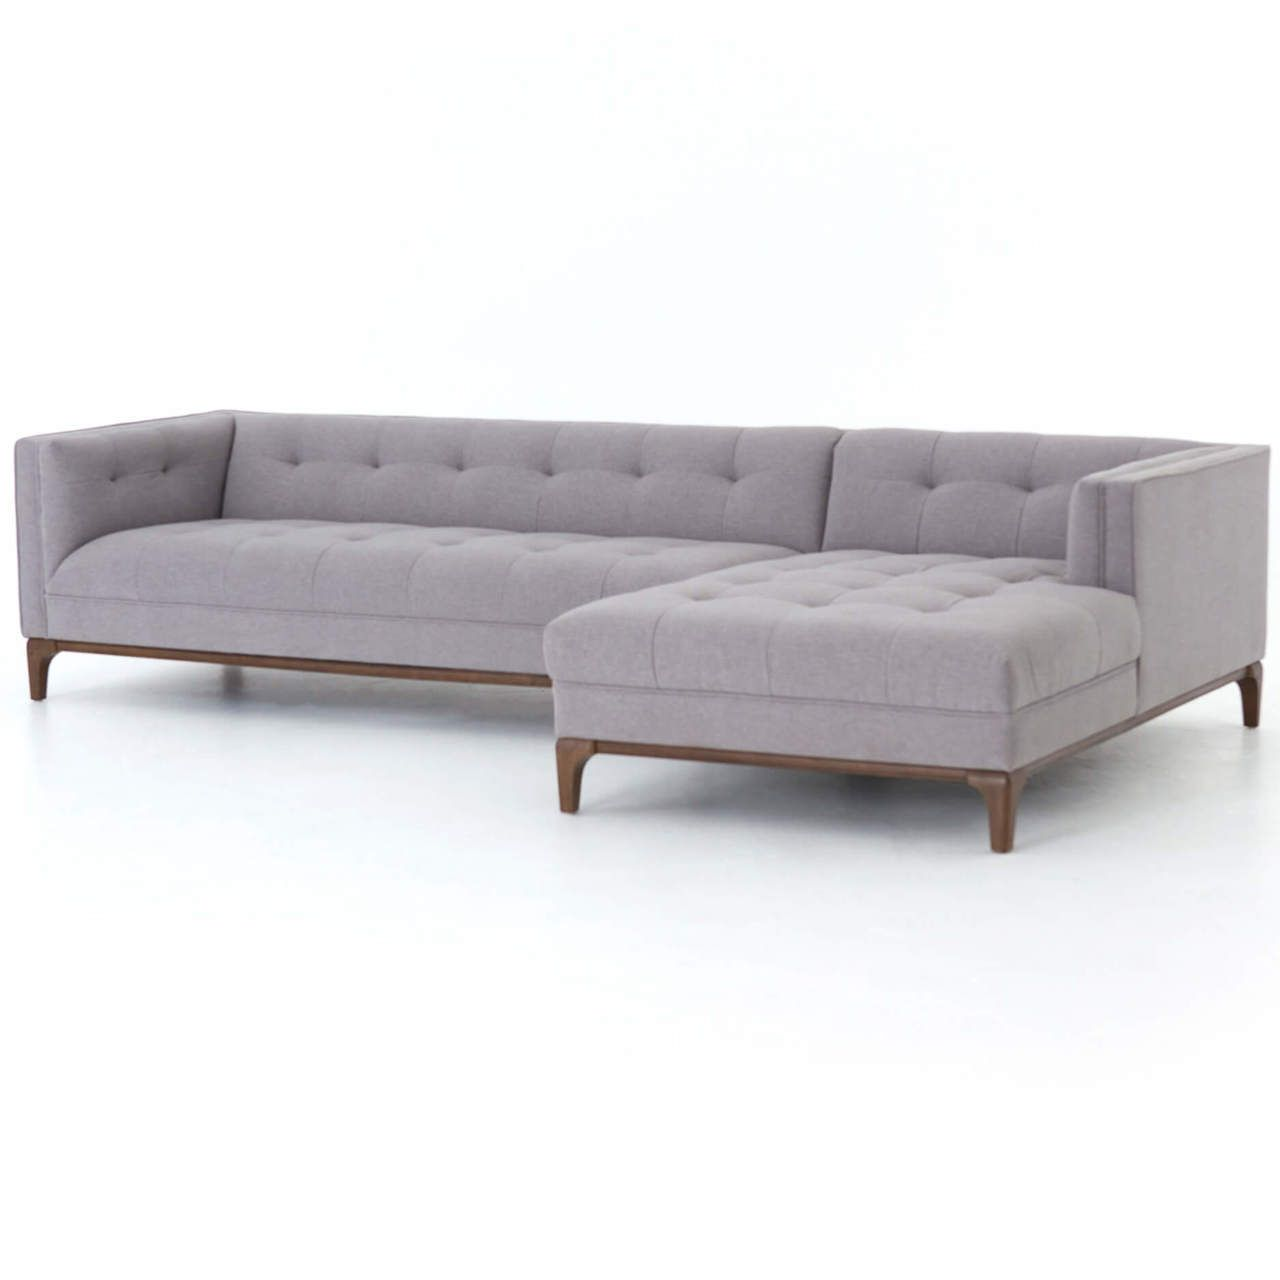 Dylan Mid Century Modern Tufted 2 Piece Sectional Sofa